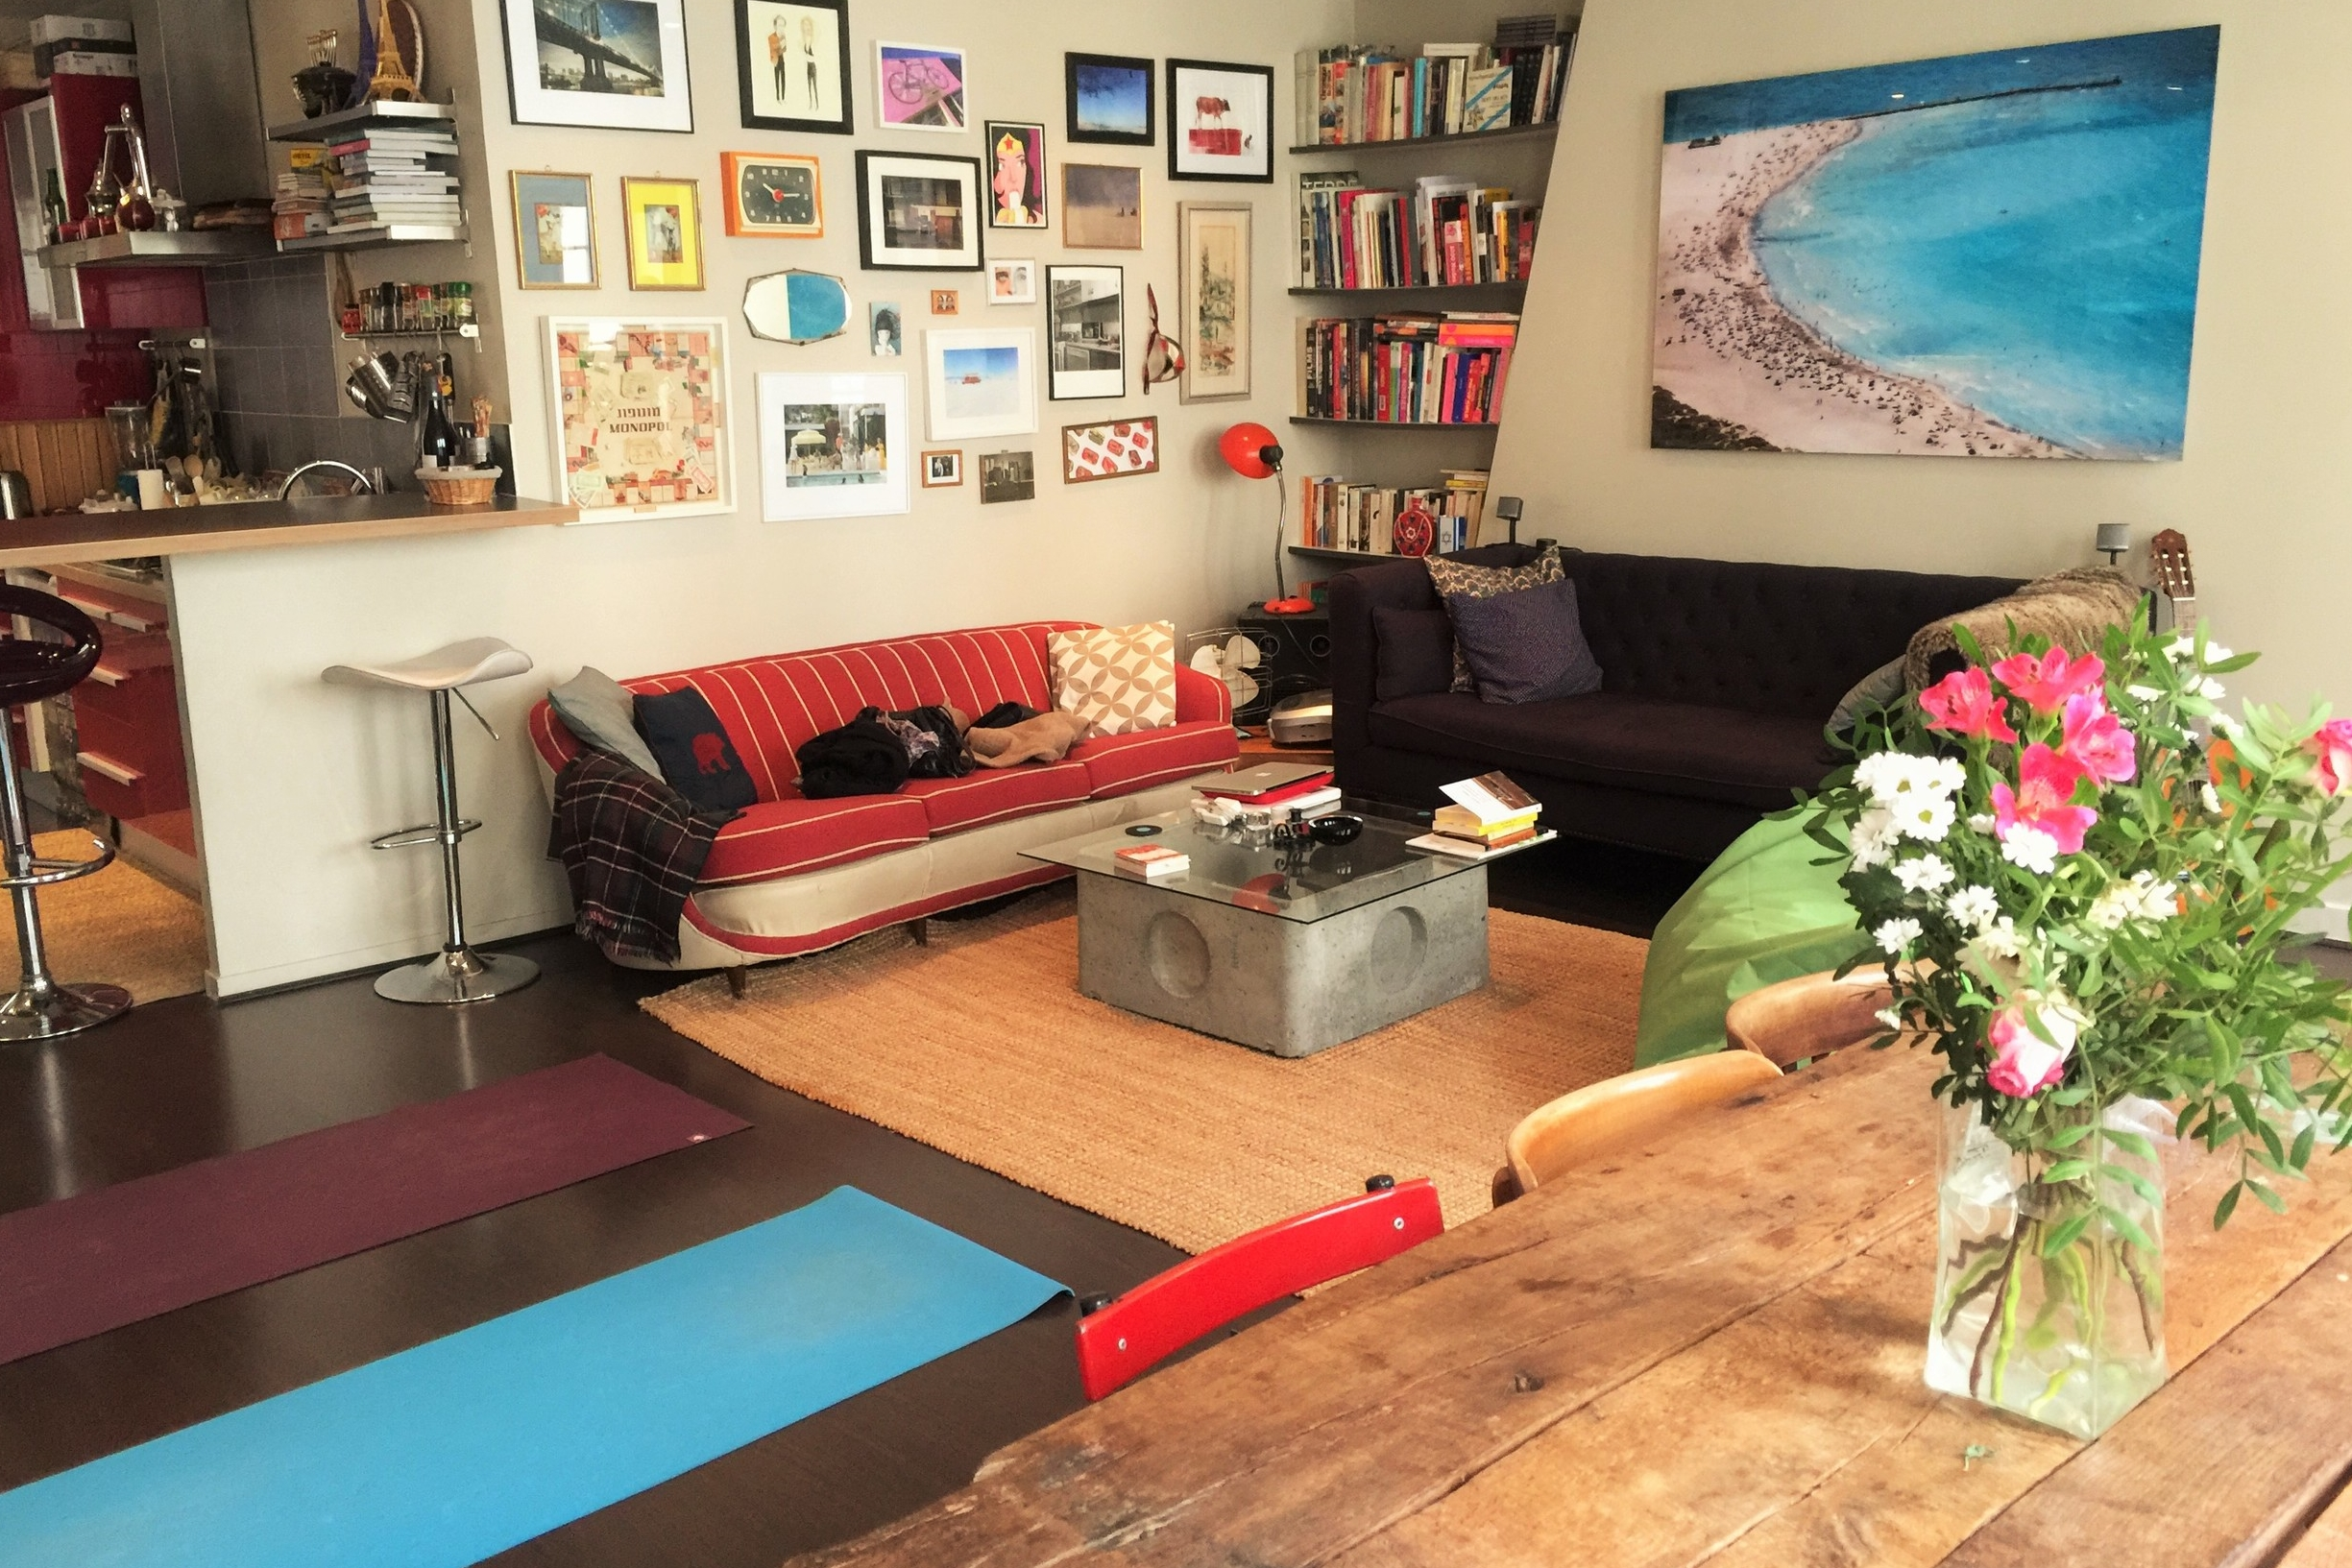 yoga-oly-be-cours-a-domicile-hote.JPG